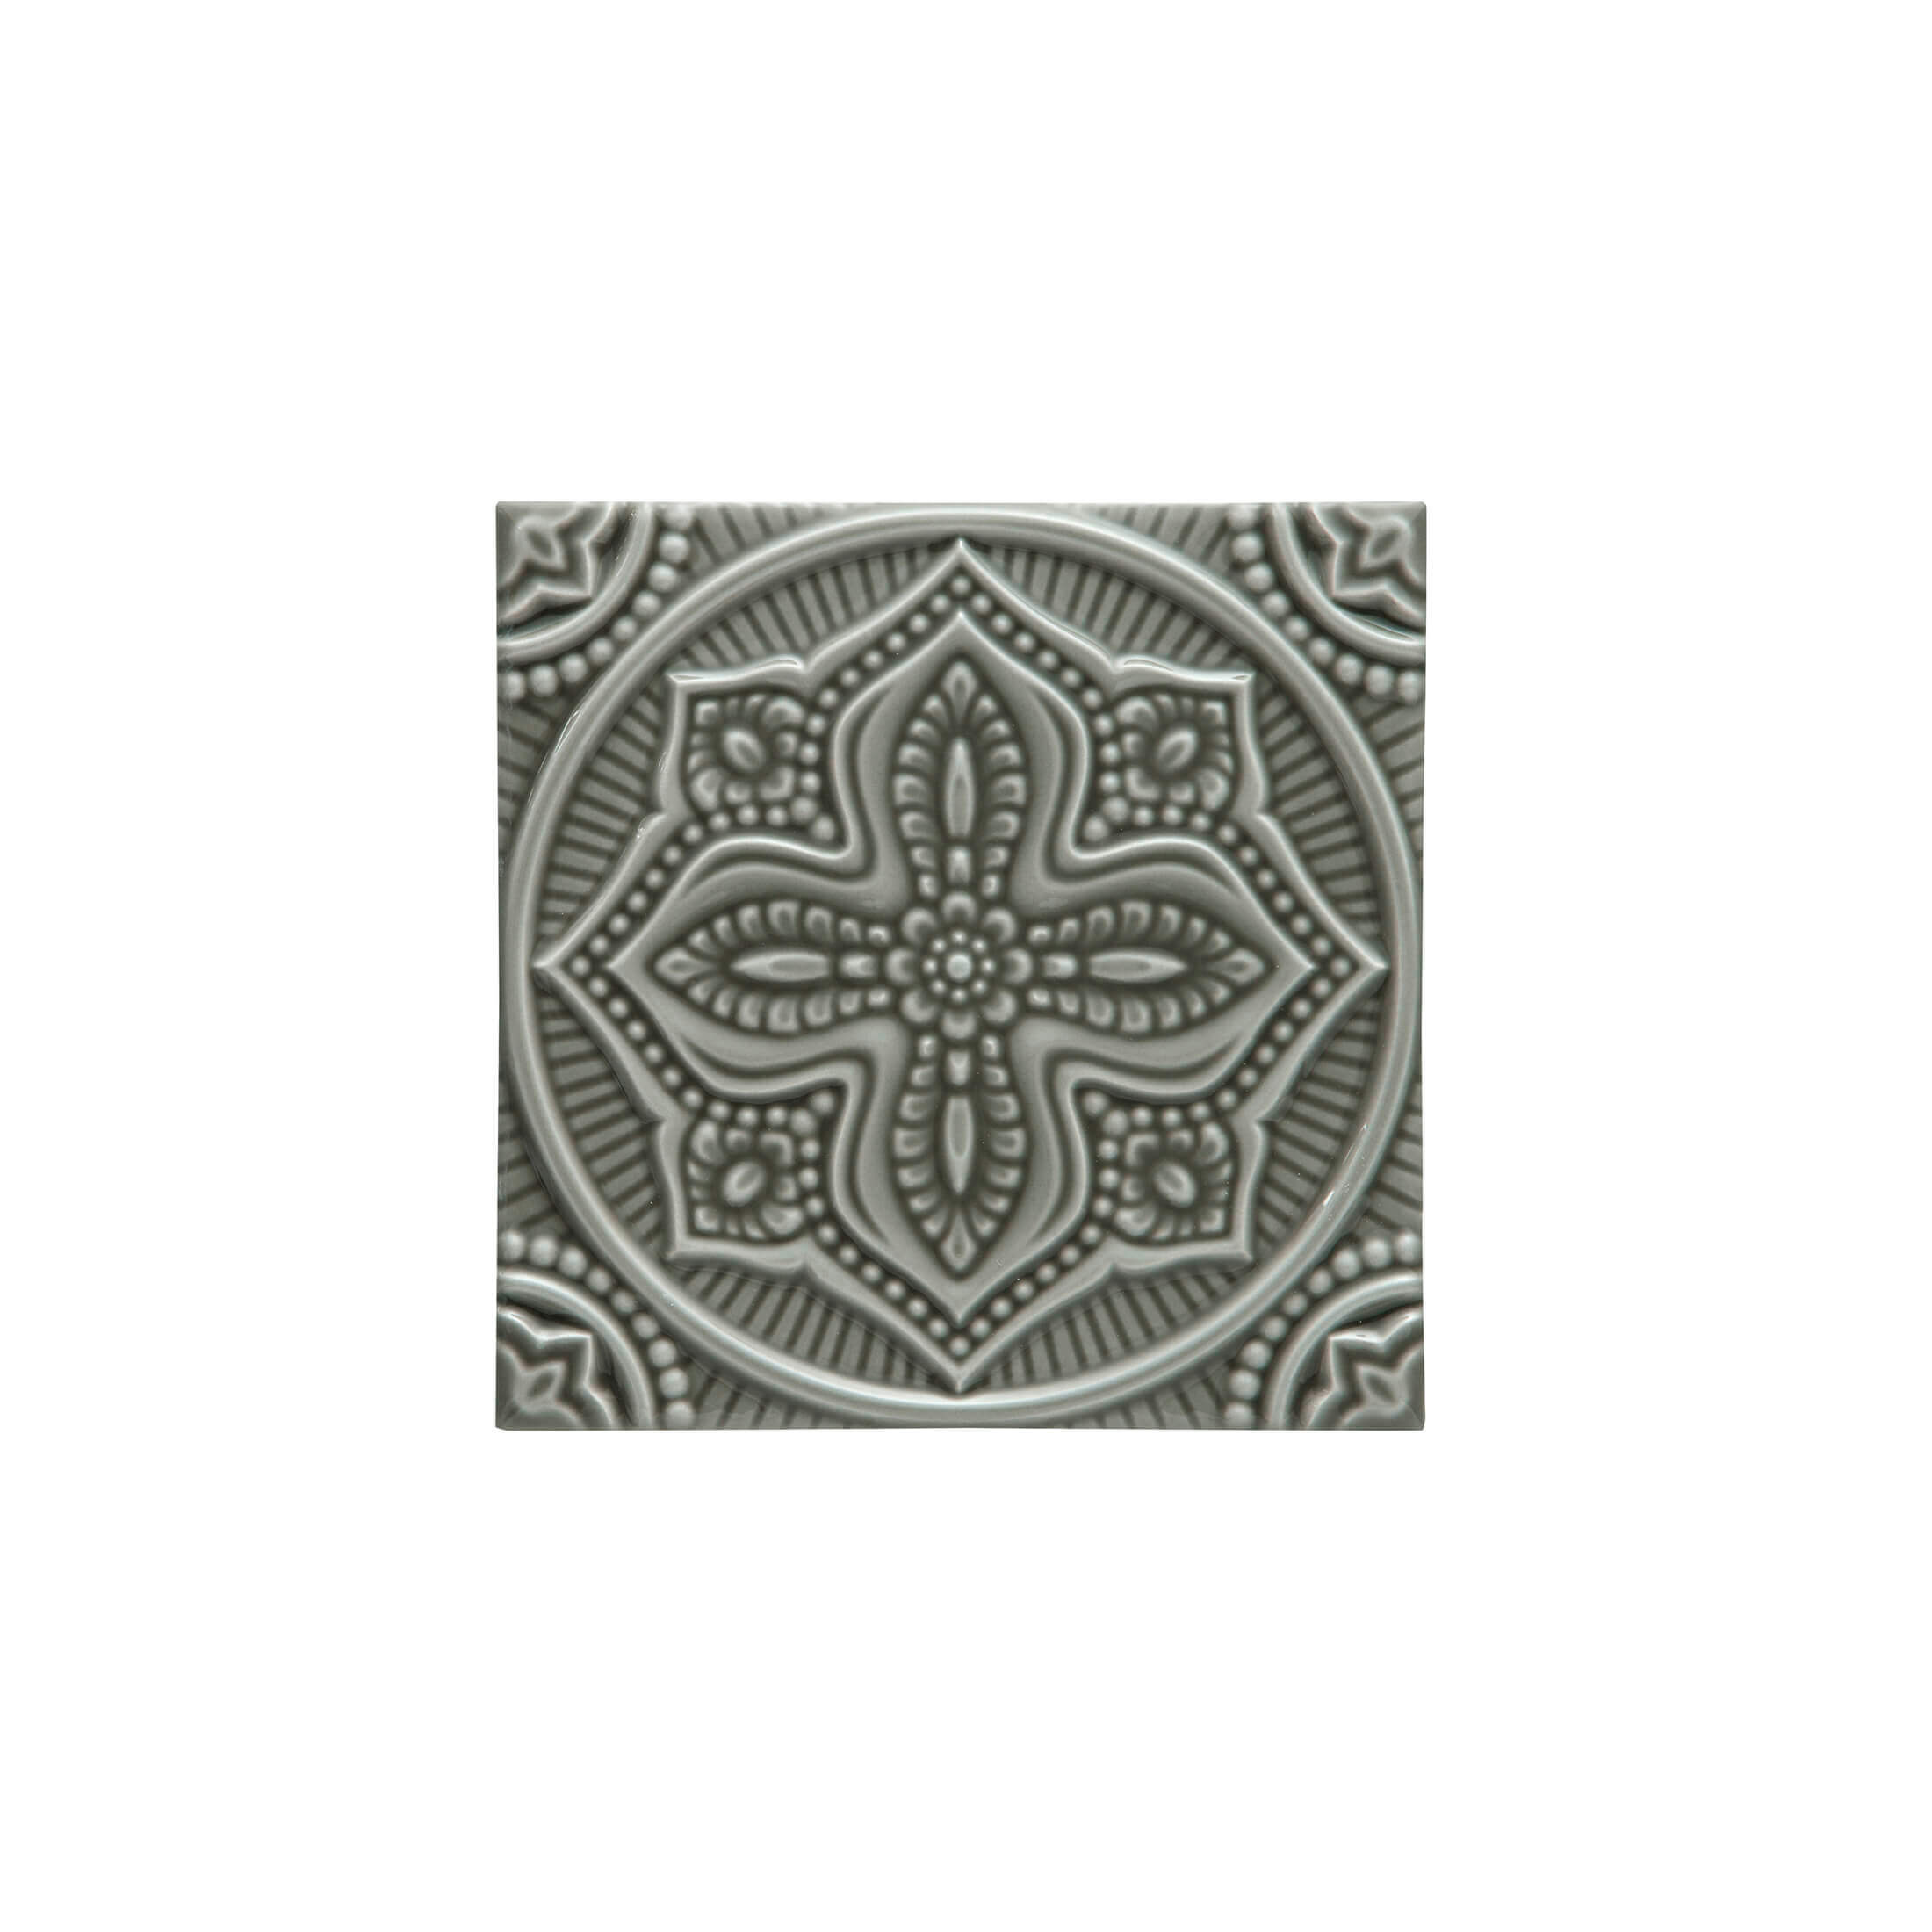 ADST4095 - RELIEVE MANDALA PLANET - 14.8 cm X 14.8 cm